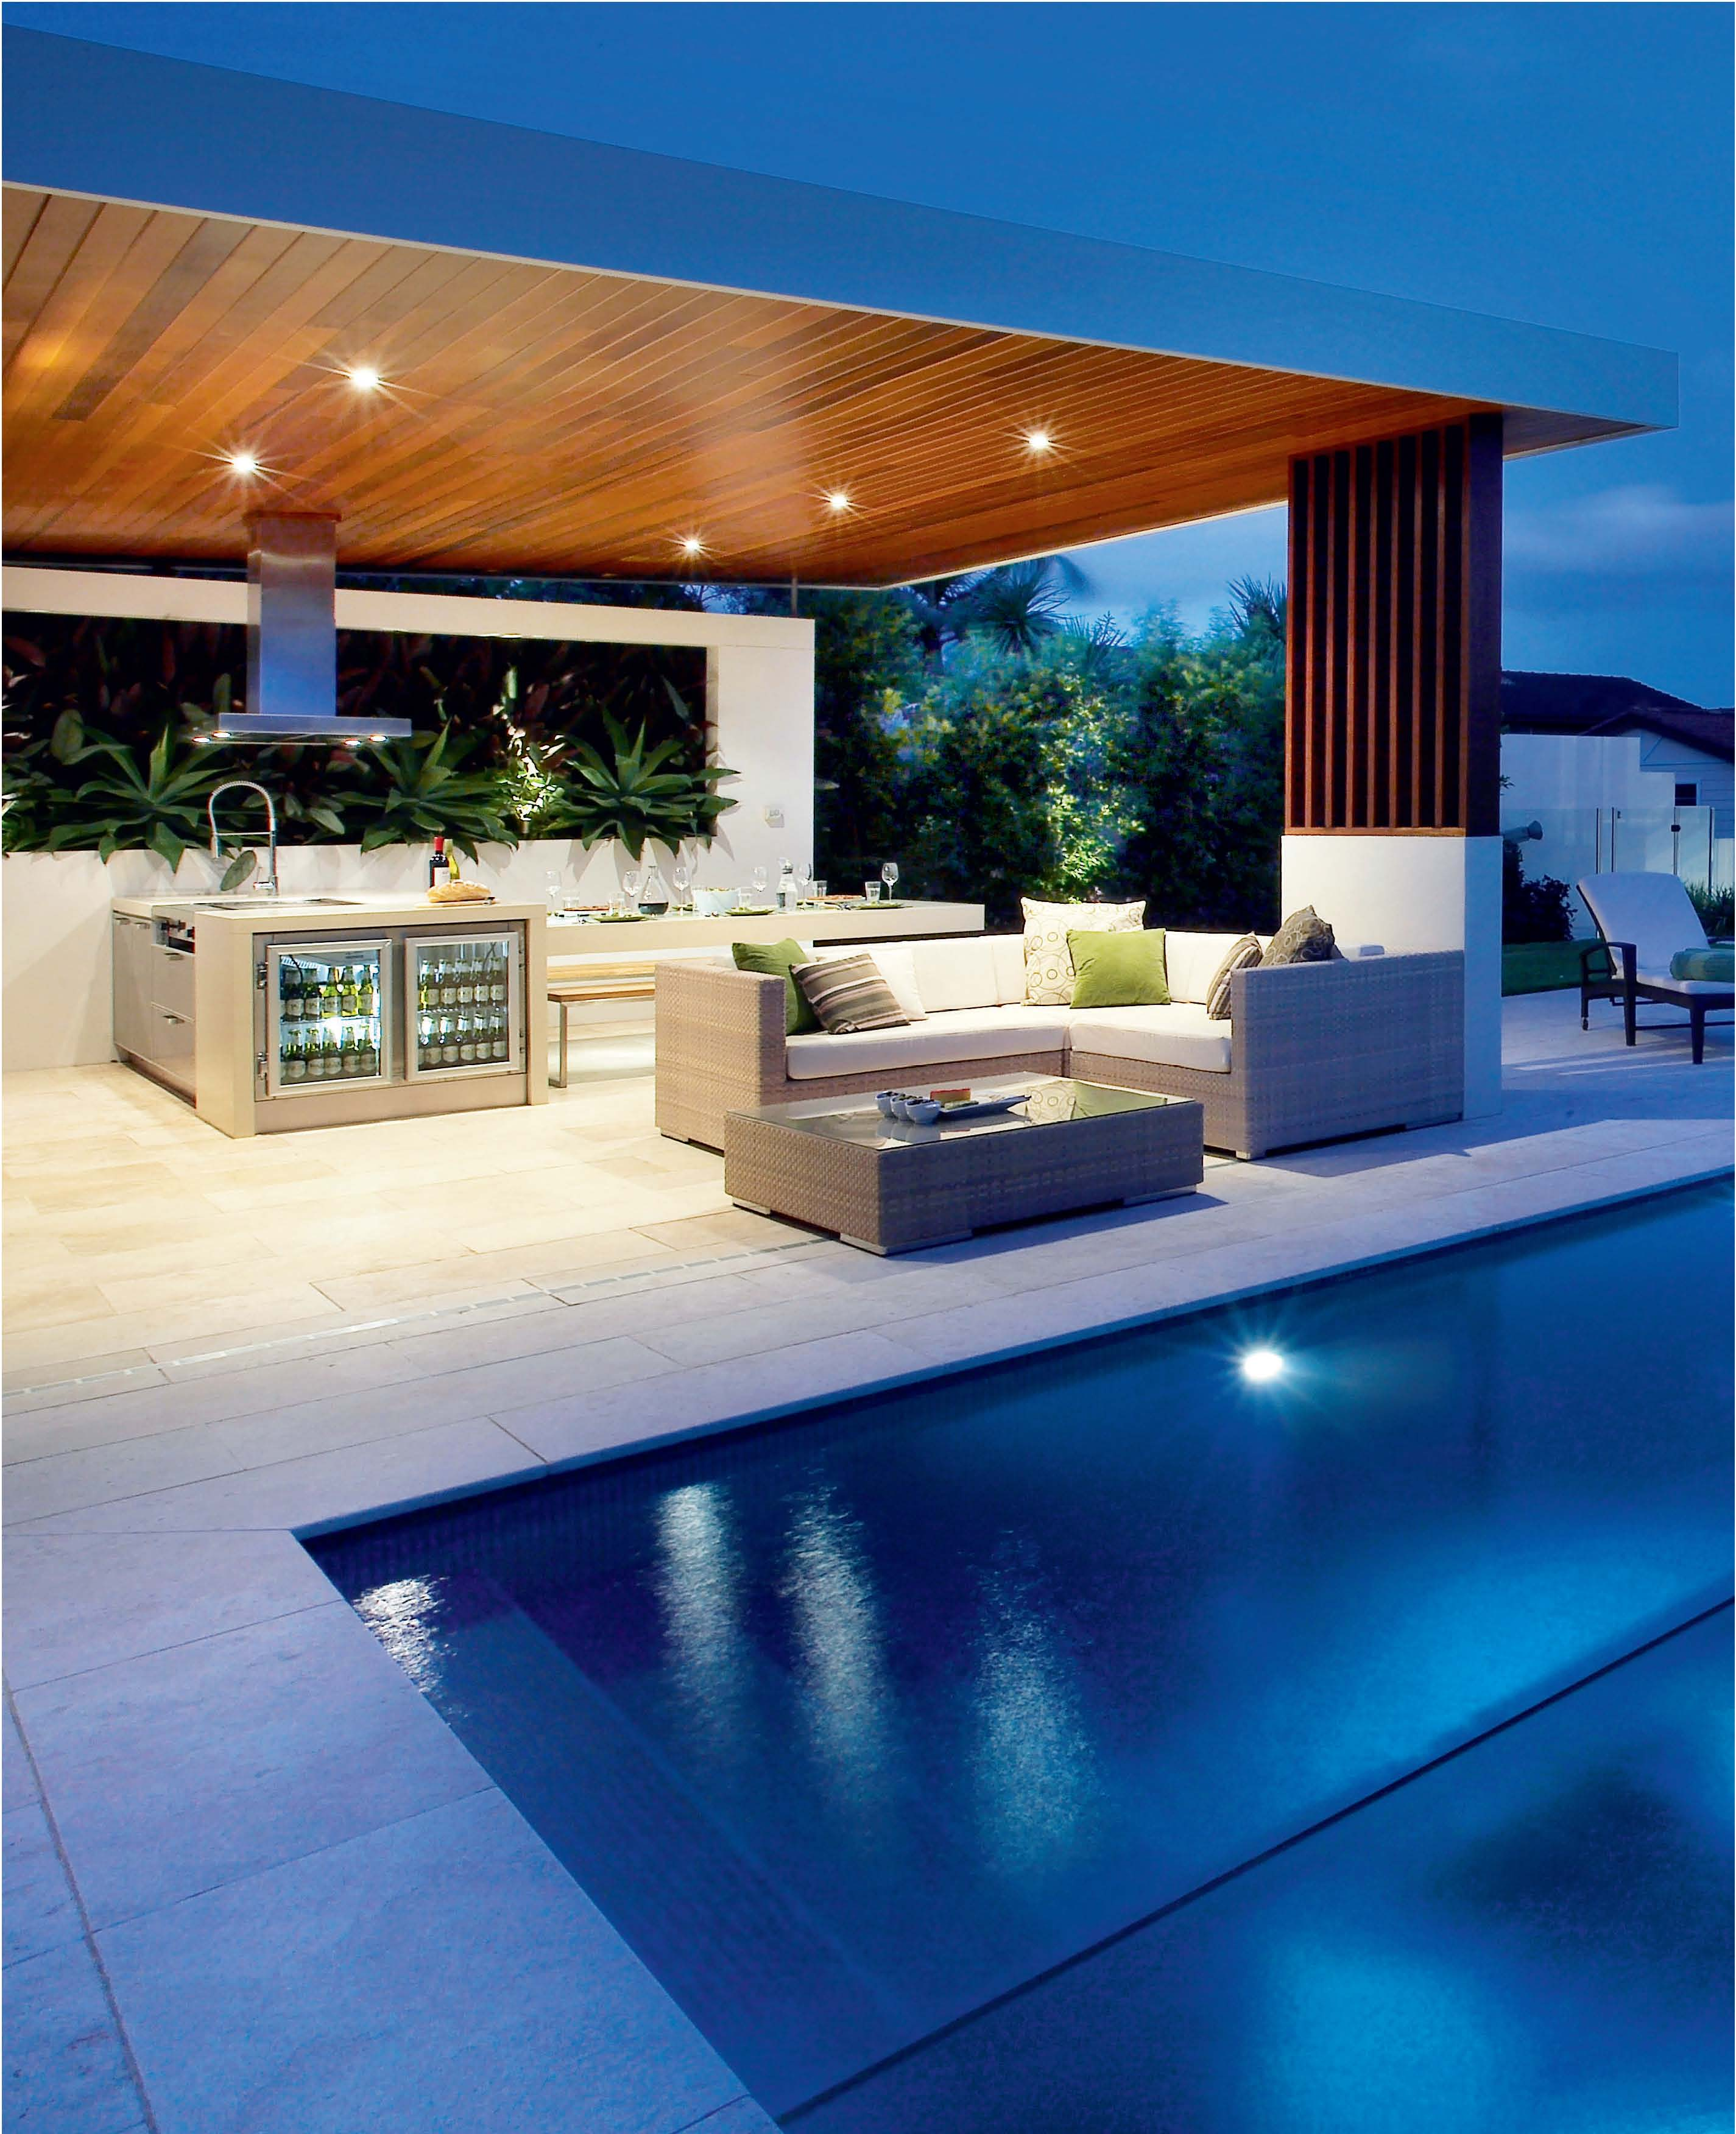 35 Outdoor Design For Your Home - The WoW Style on Outdoor Living Designer id=50273